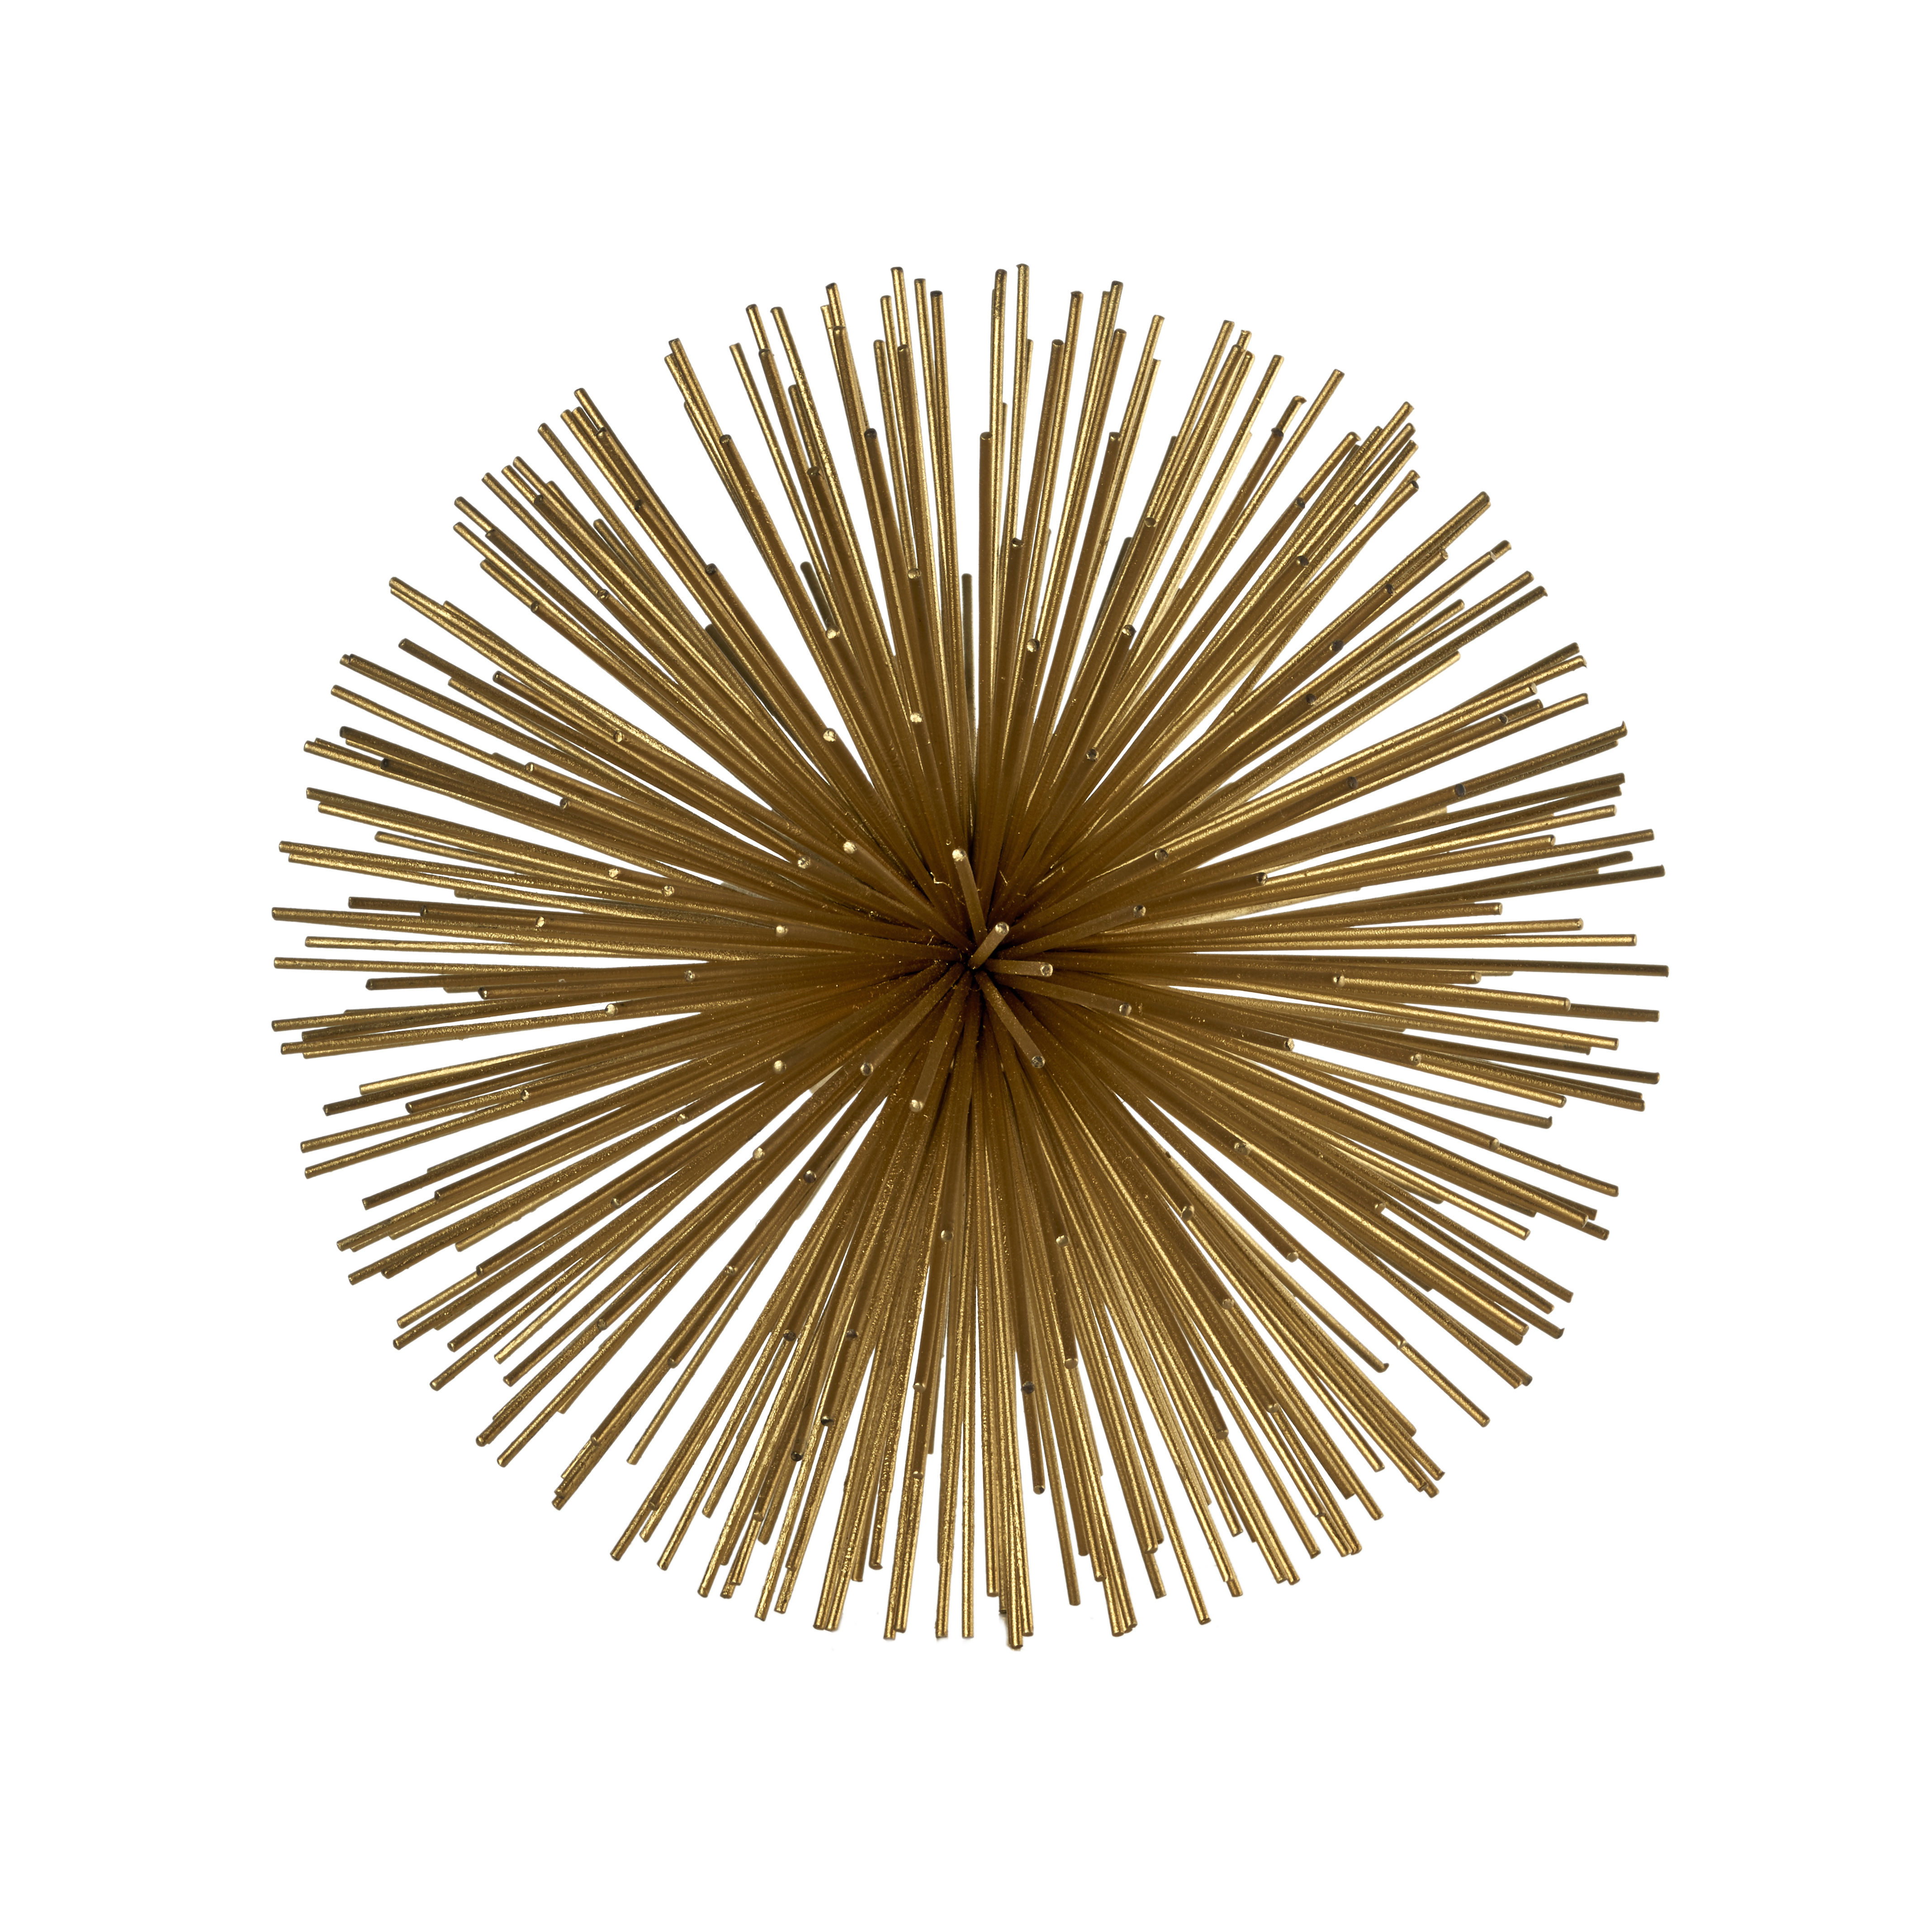 Decoration - Home Accessories - Prickle brass Small Decoration - / Ø 18 cm - Metal by Pols Potten - Ø 18 cm / Brass - Tinted metal